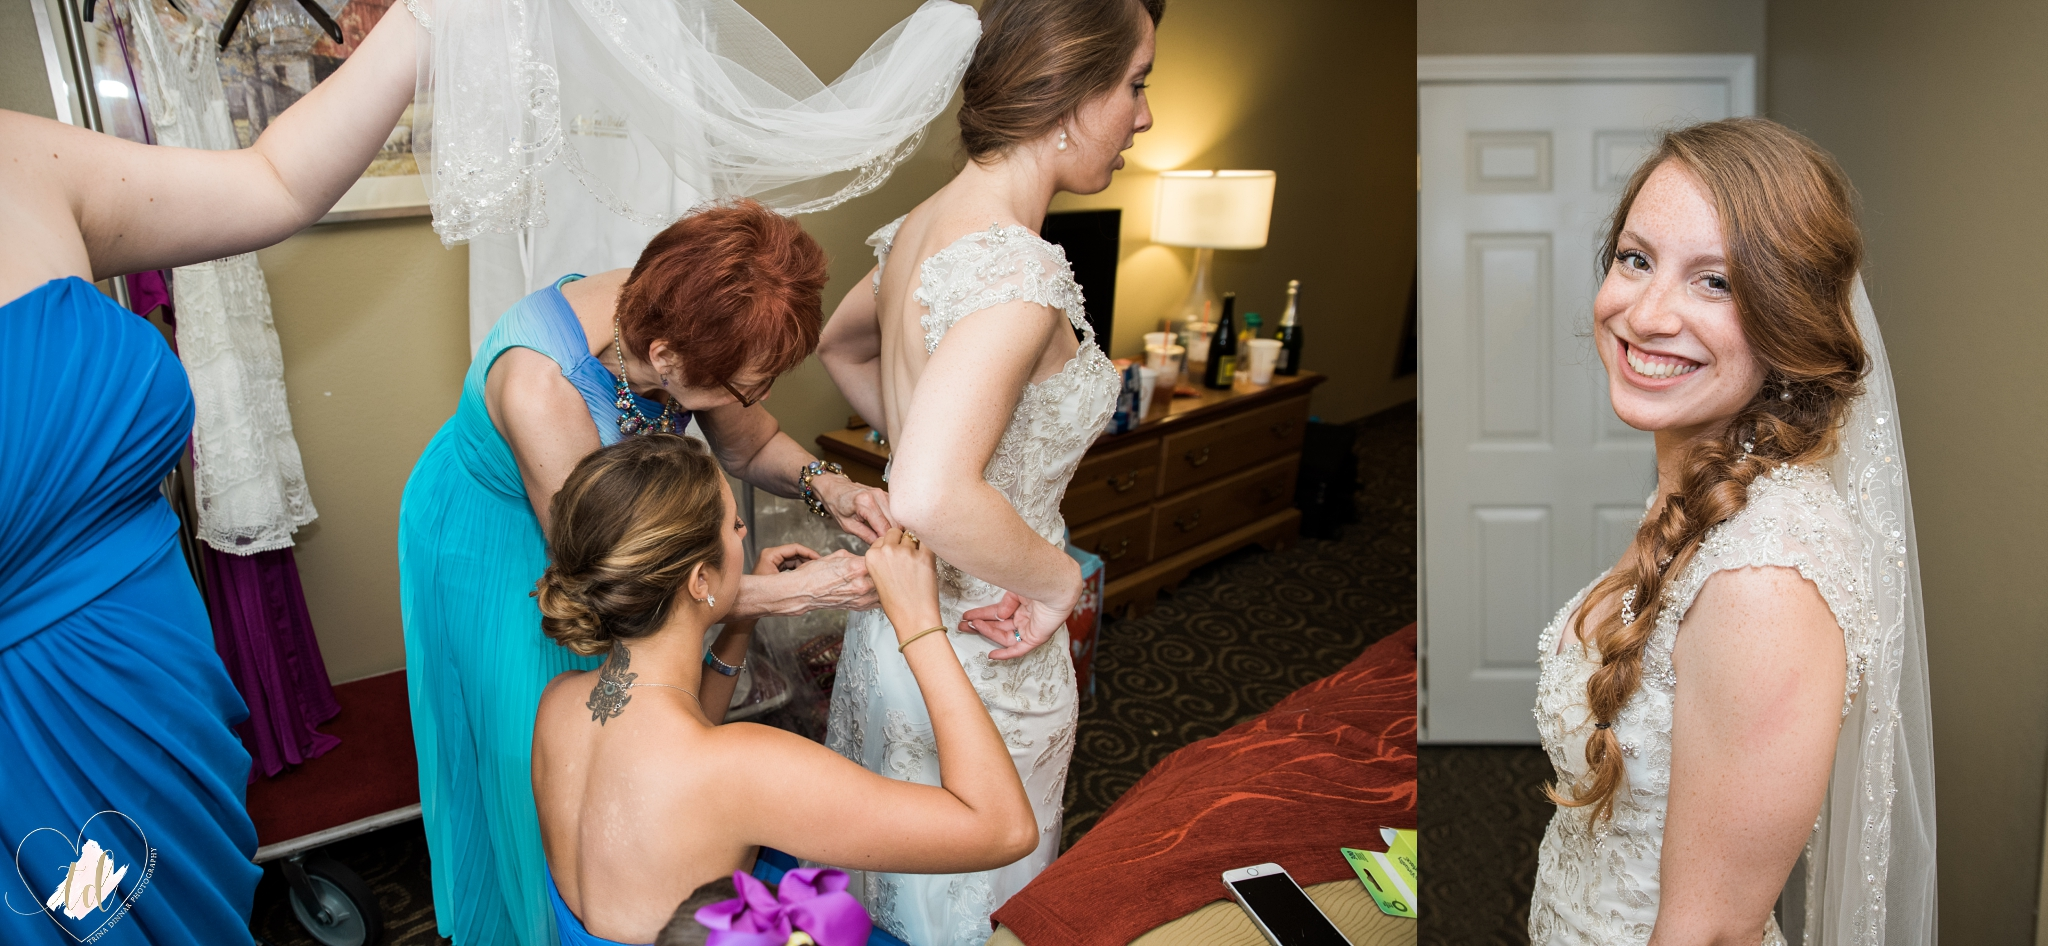 Bride putting on dress and veil at the Comfort Inn in Brunswick, Maine.